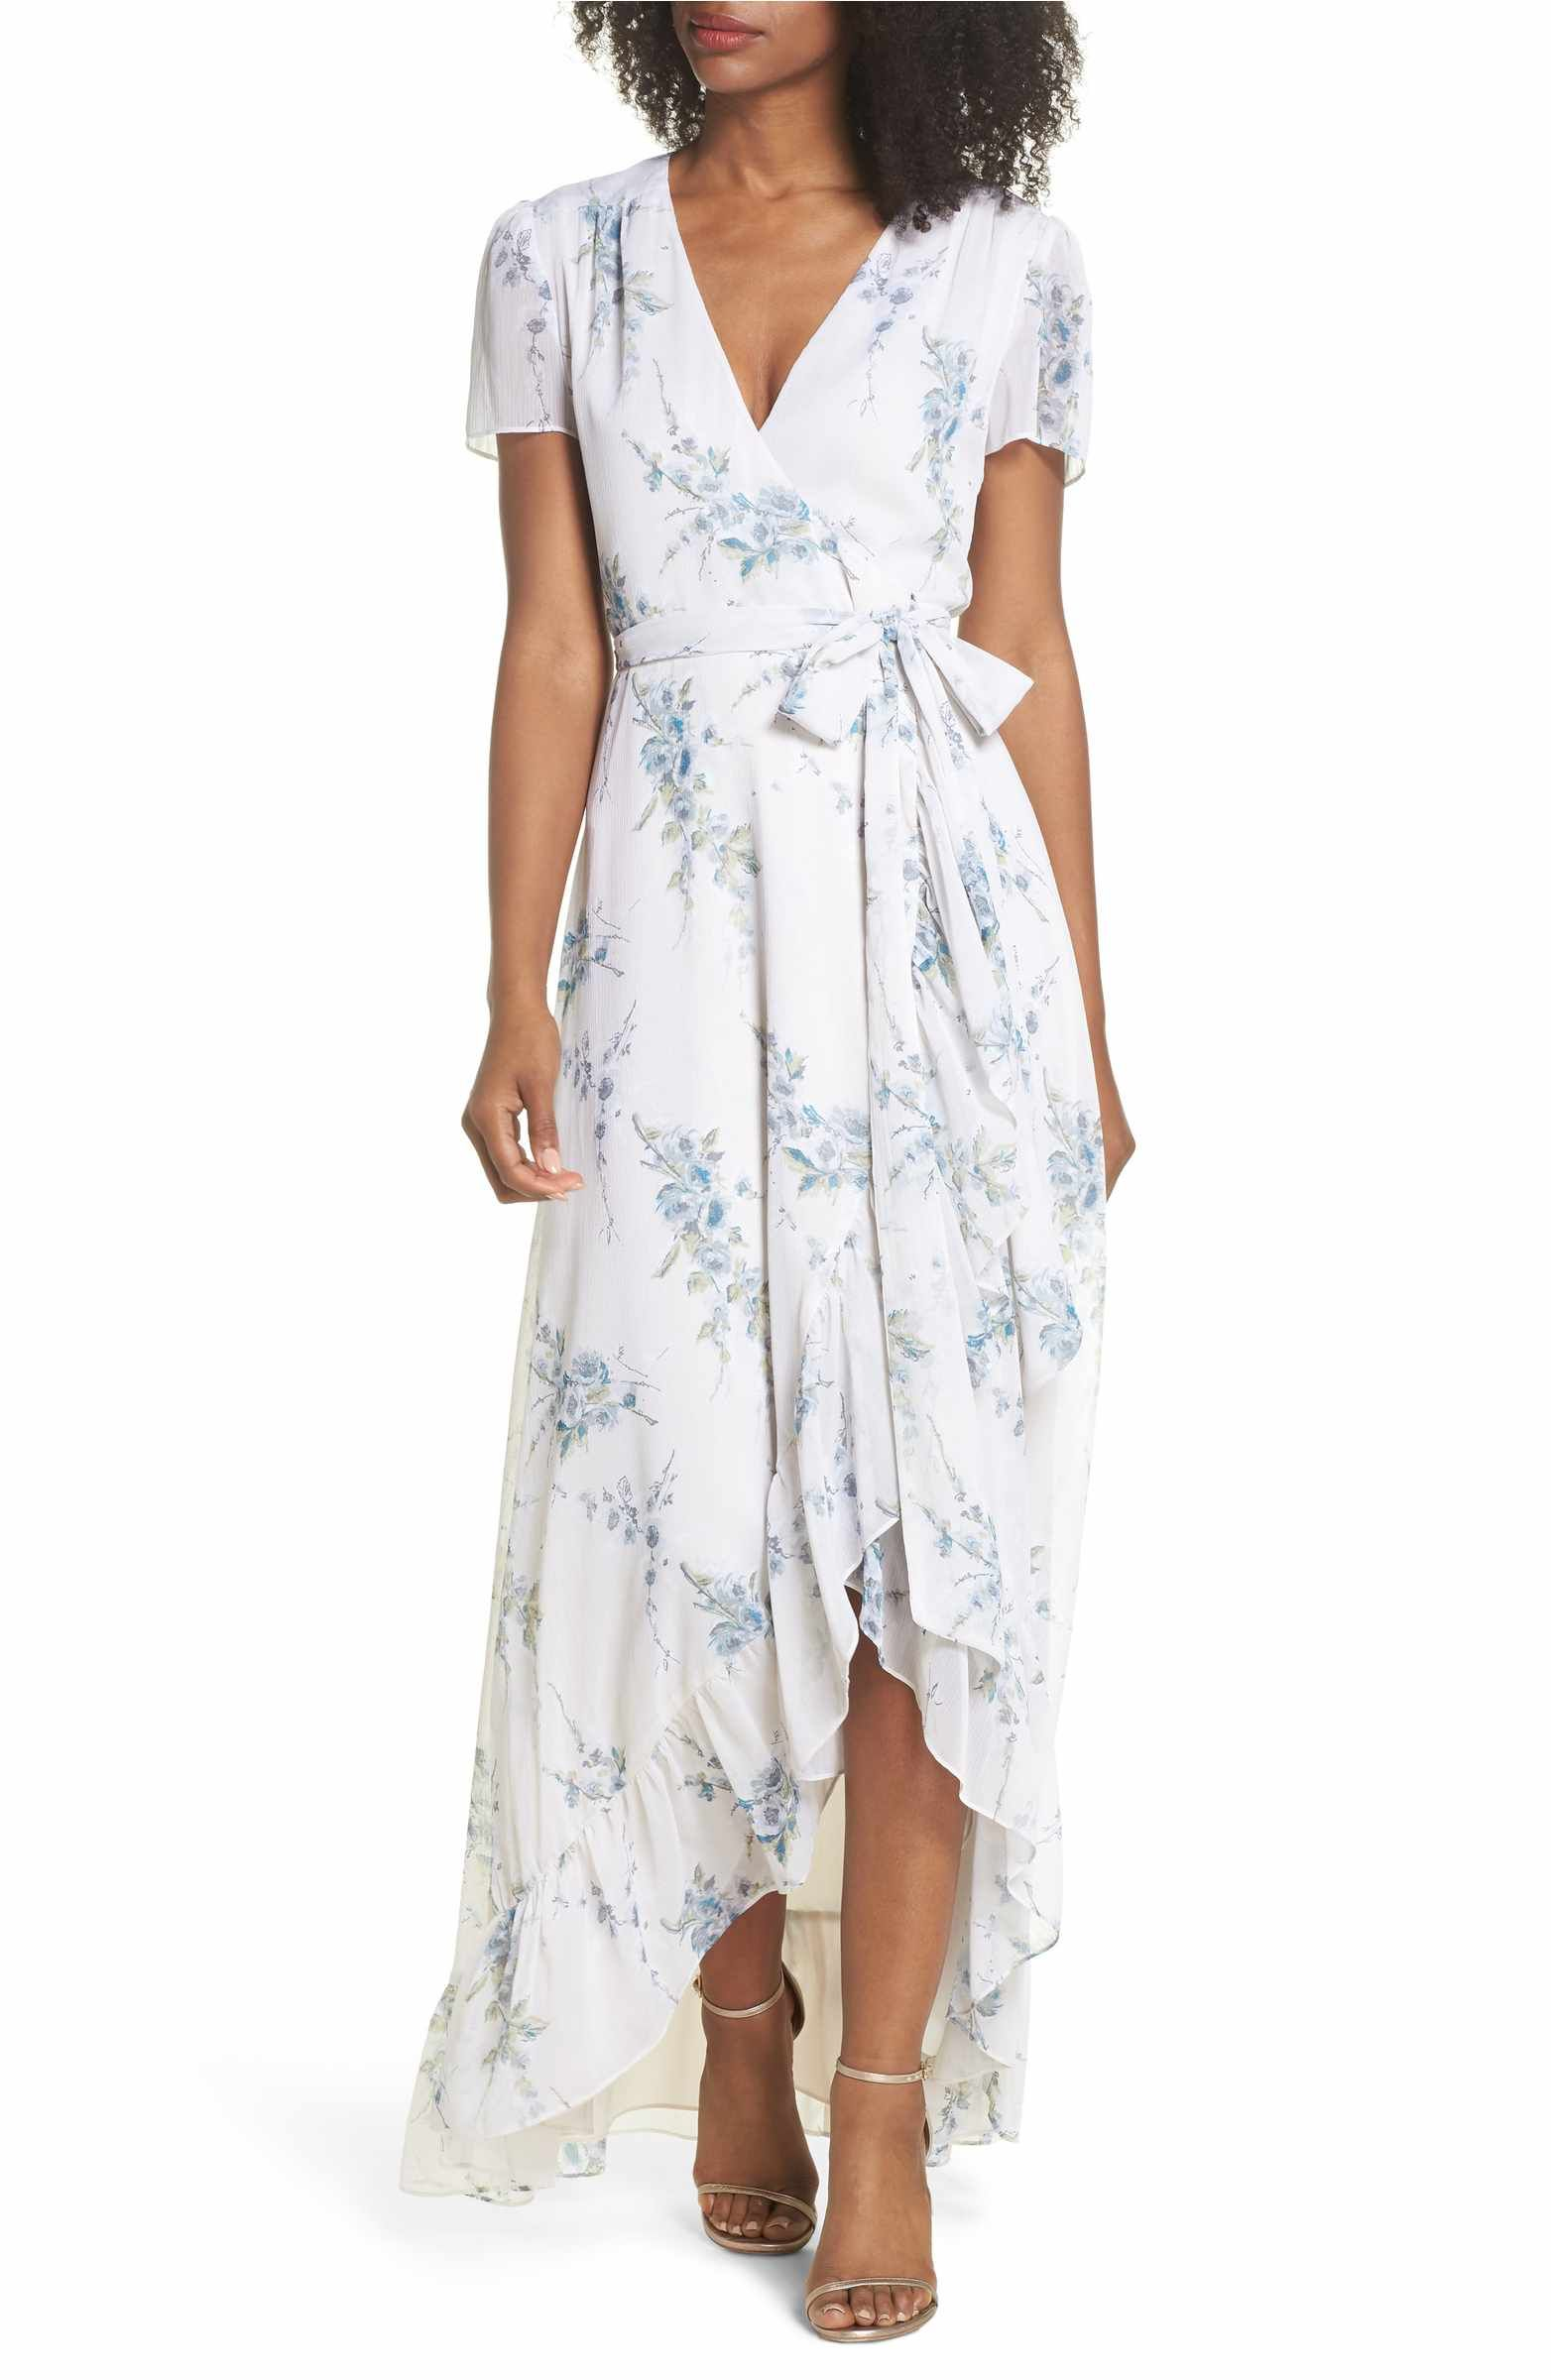 6ccf863eec Main Image - WAYF The Natasha Floral Wrap Maxi Dress White Ruffle Dress,  Wrap Dress